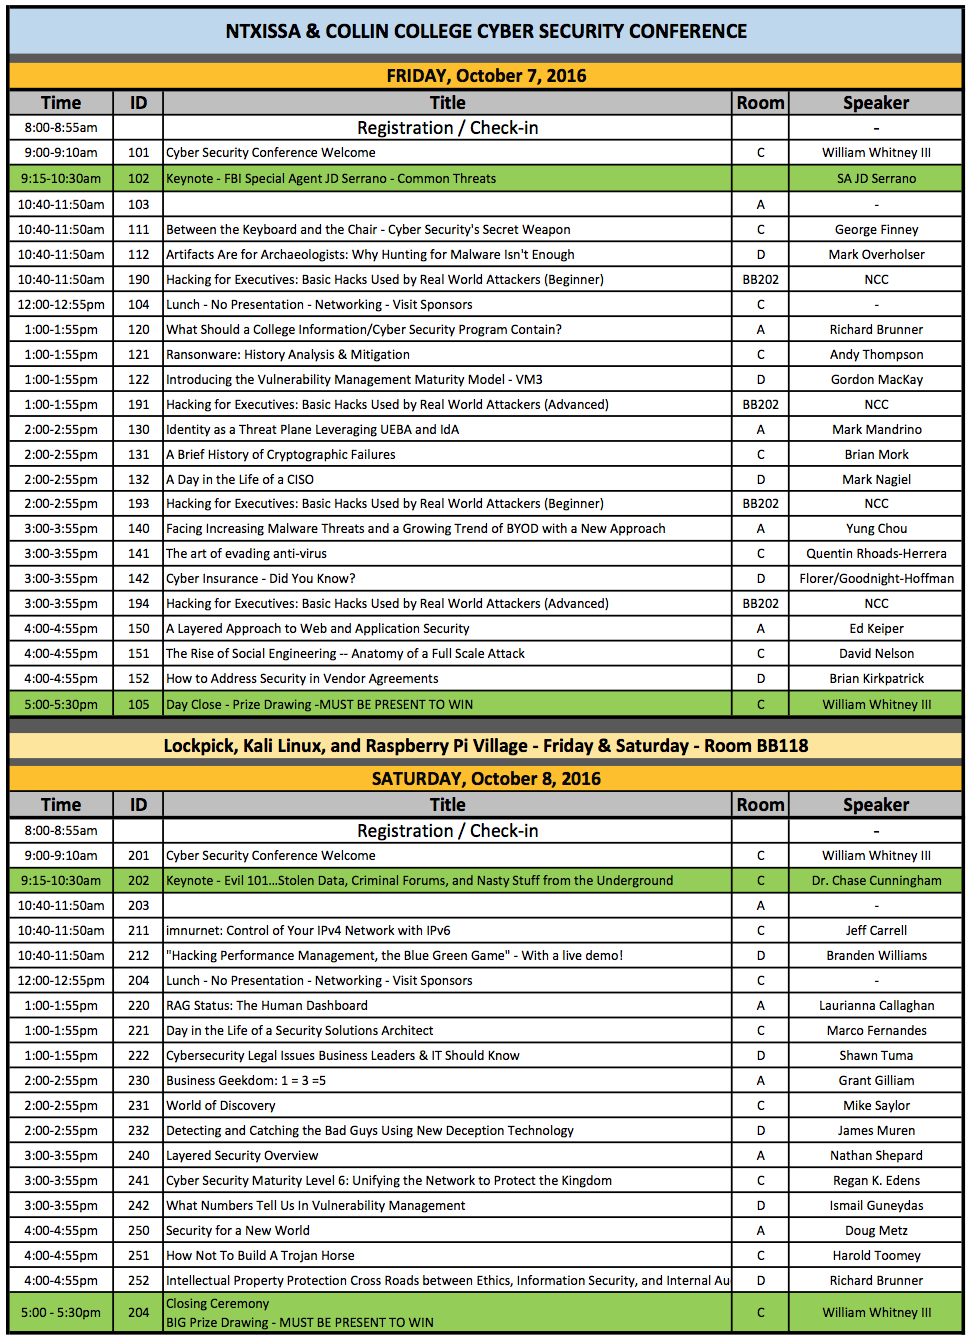 NTXISSA 4th Cyber Security Conference Event Schedule Graphic